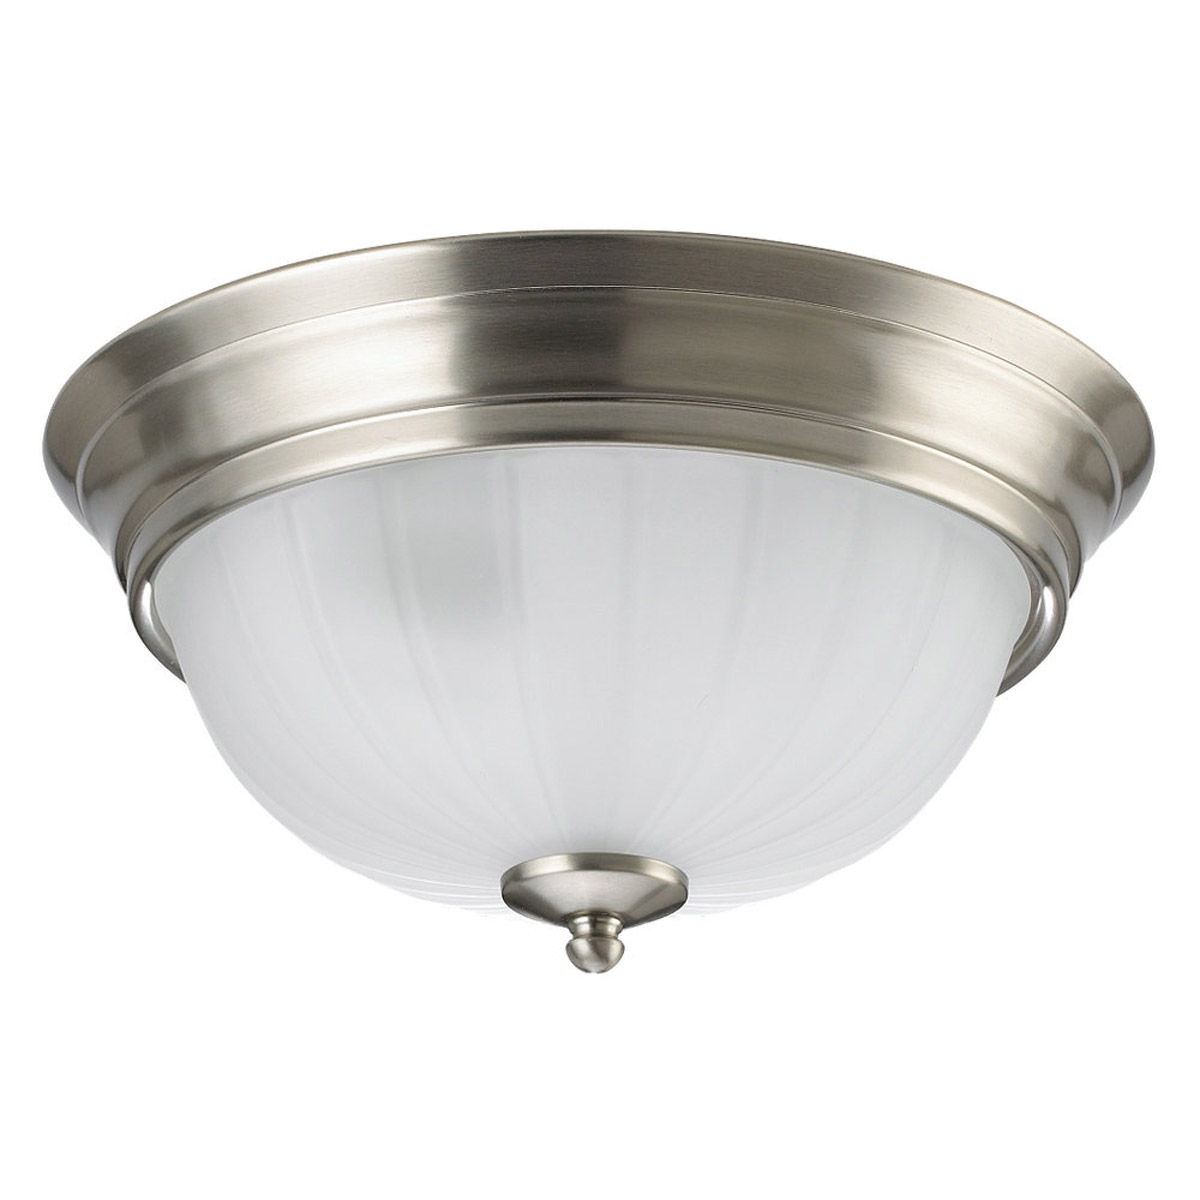 Sea Gull Lighting Floyd 1 Light Flush Mount in Brushed Nickel 79504BLE-962 photo